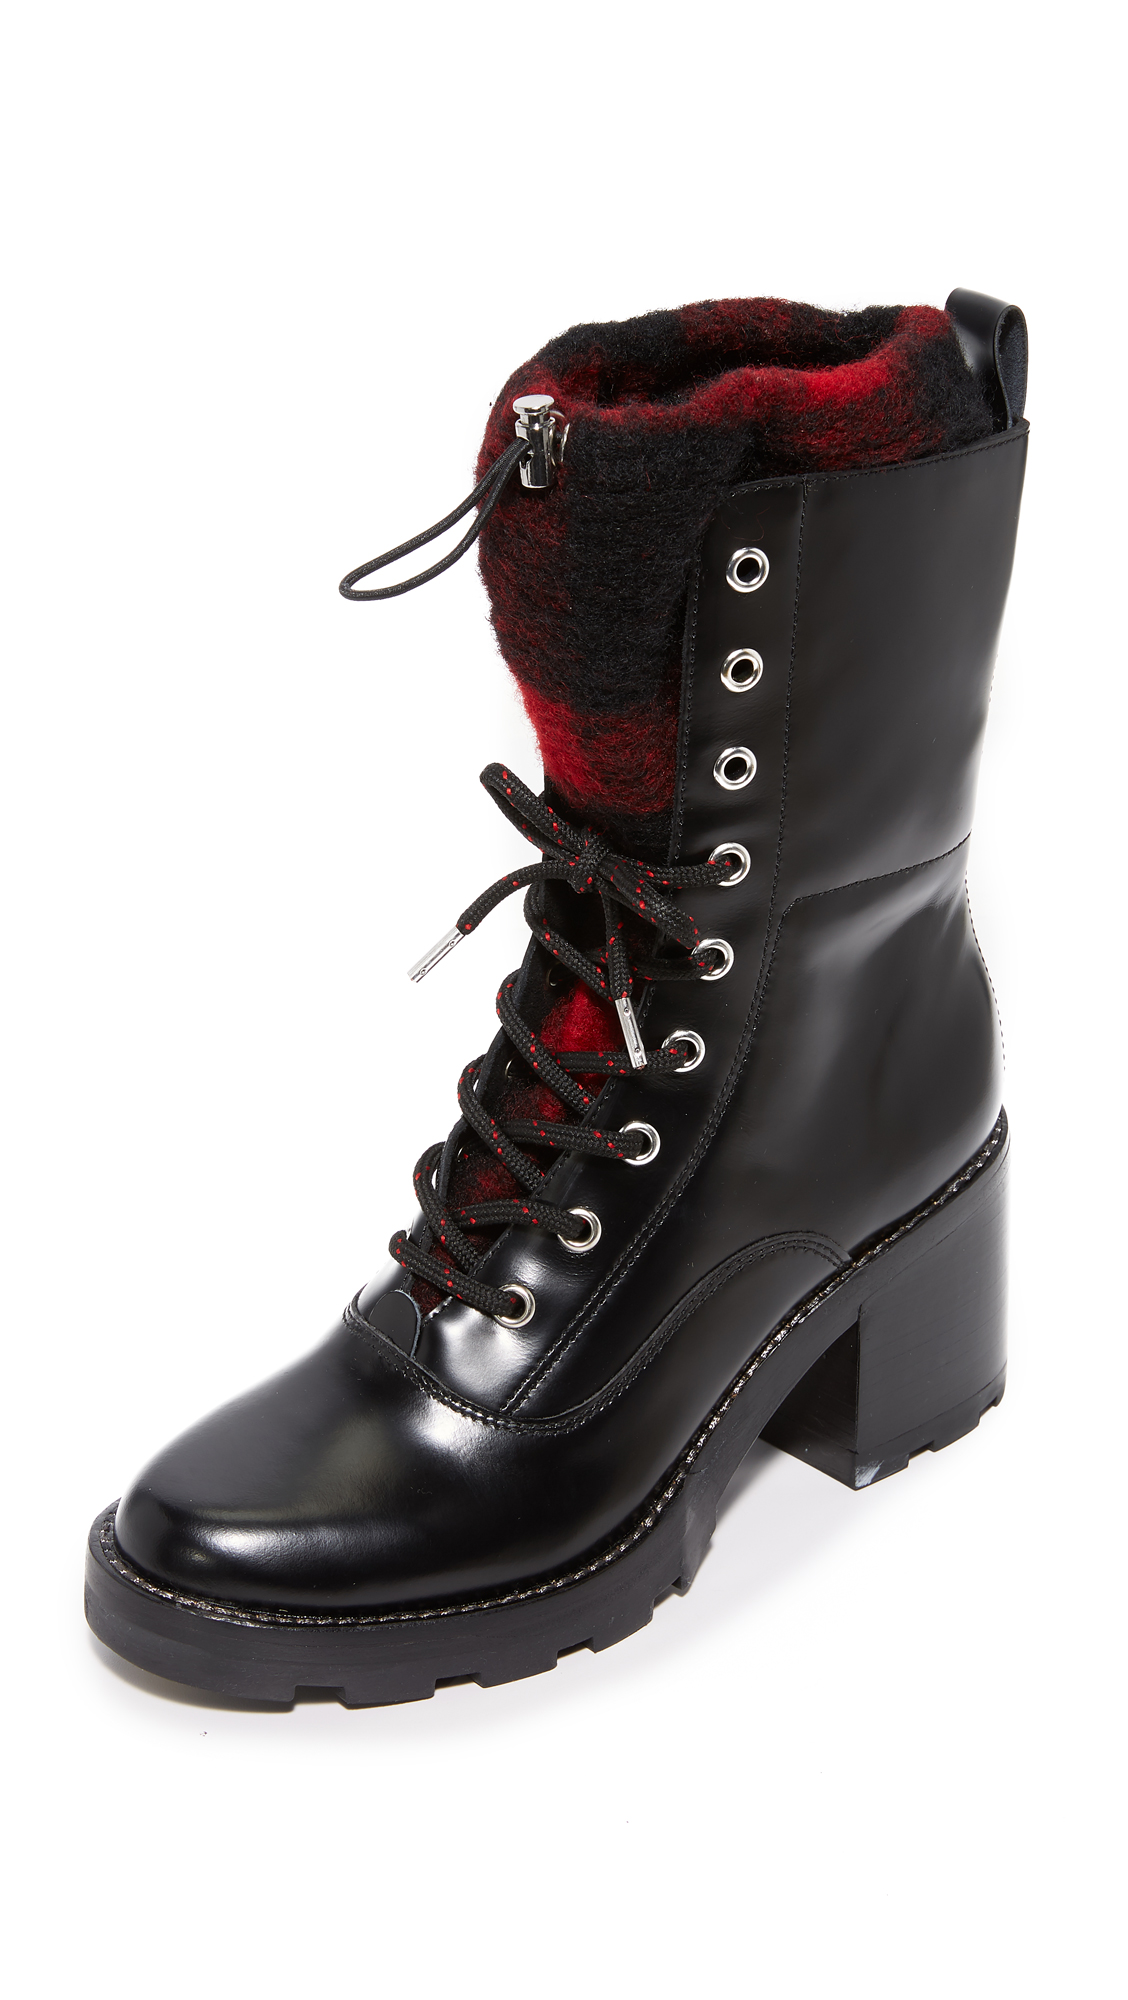 Sigerson Morrison Gladys Lace Up Booties - Black/Red